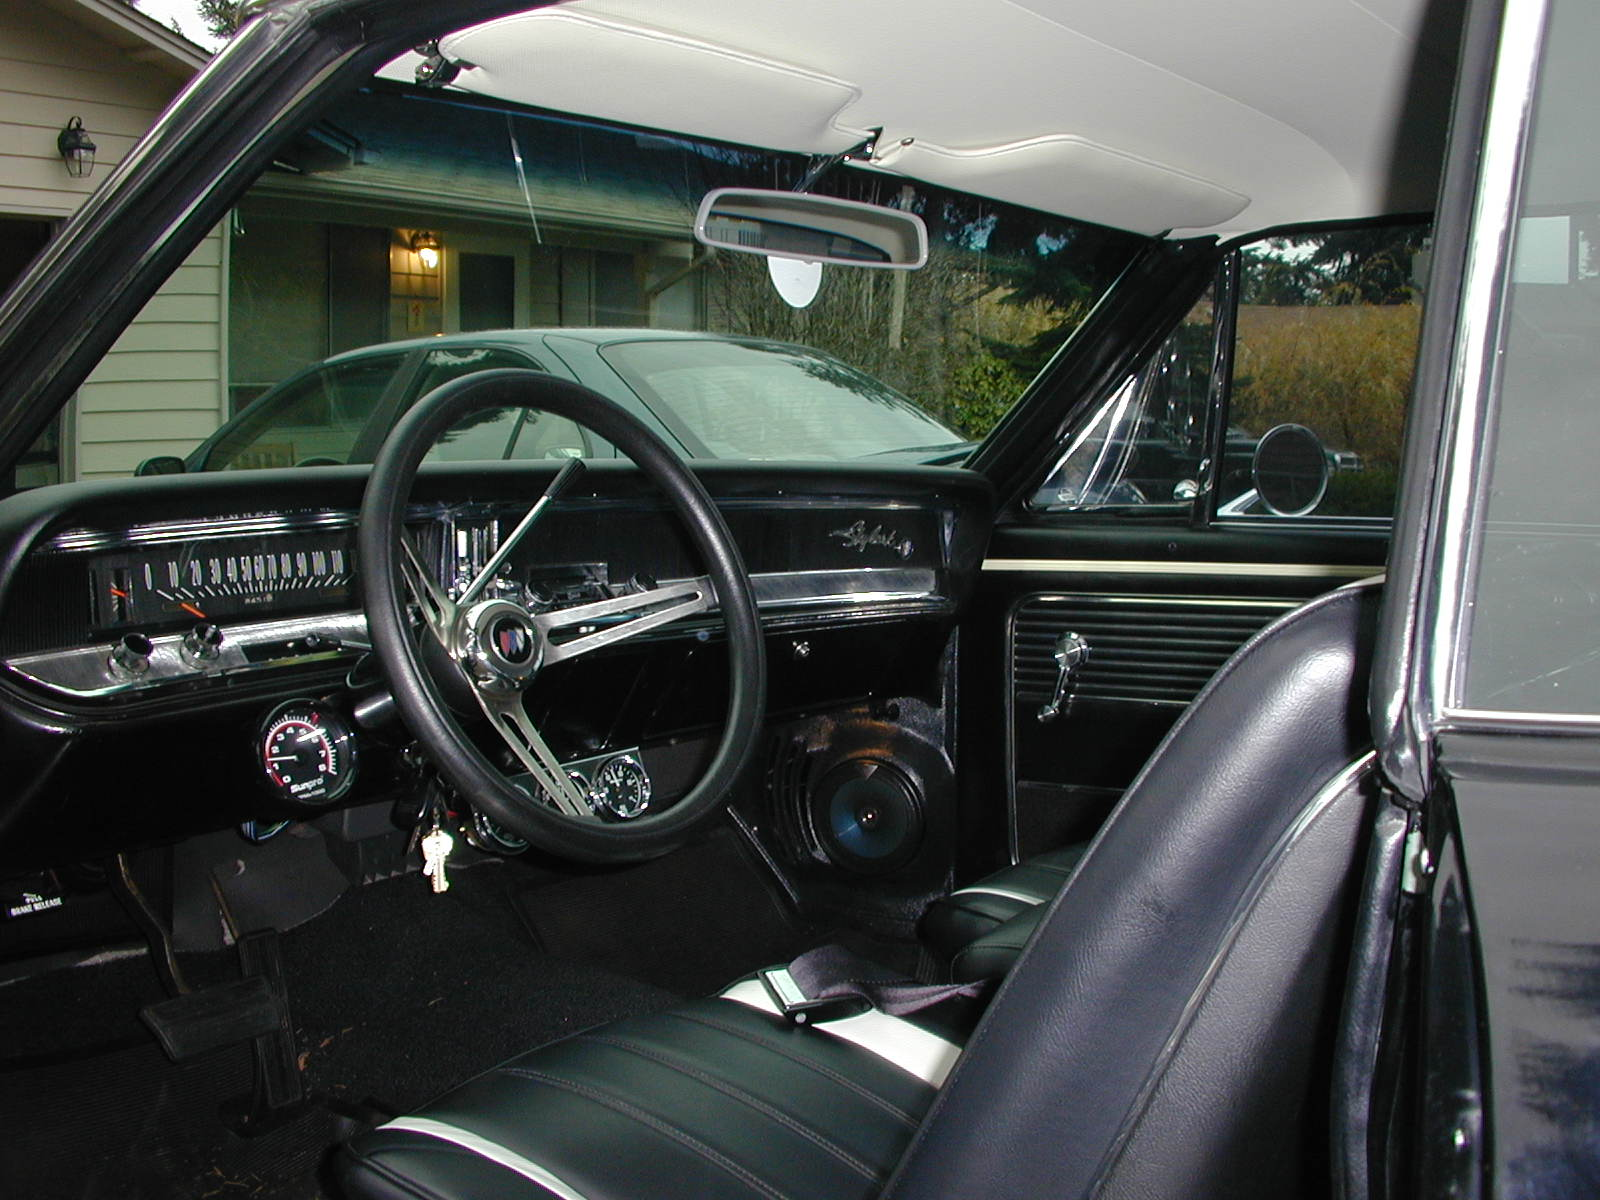 1966 Buick Riviera Interior Images Galleries With A Bite